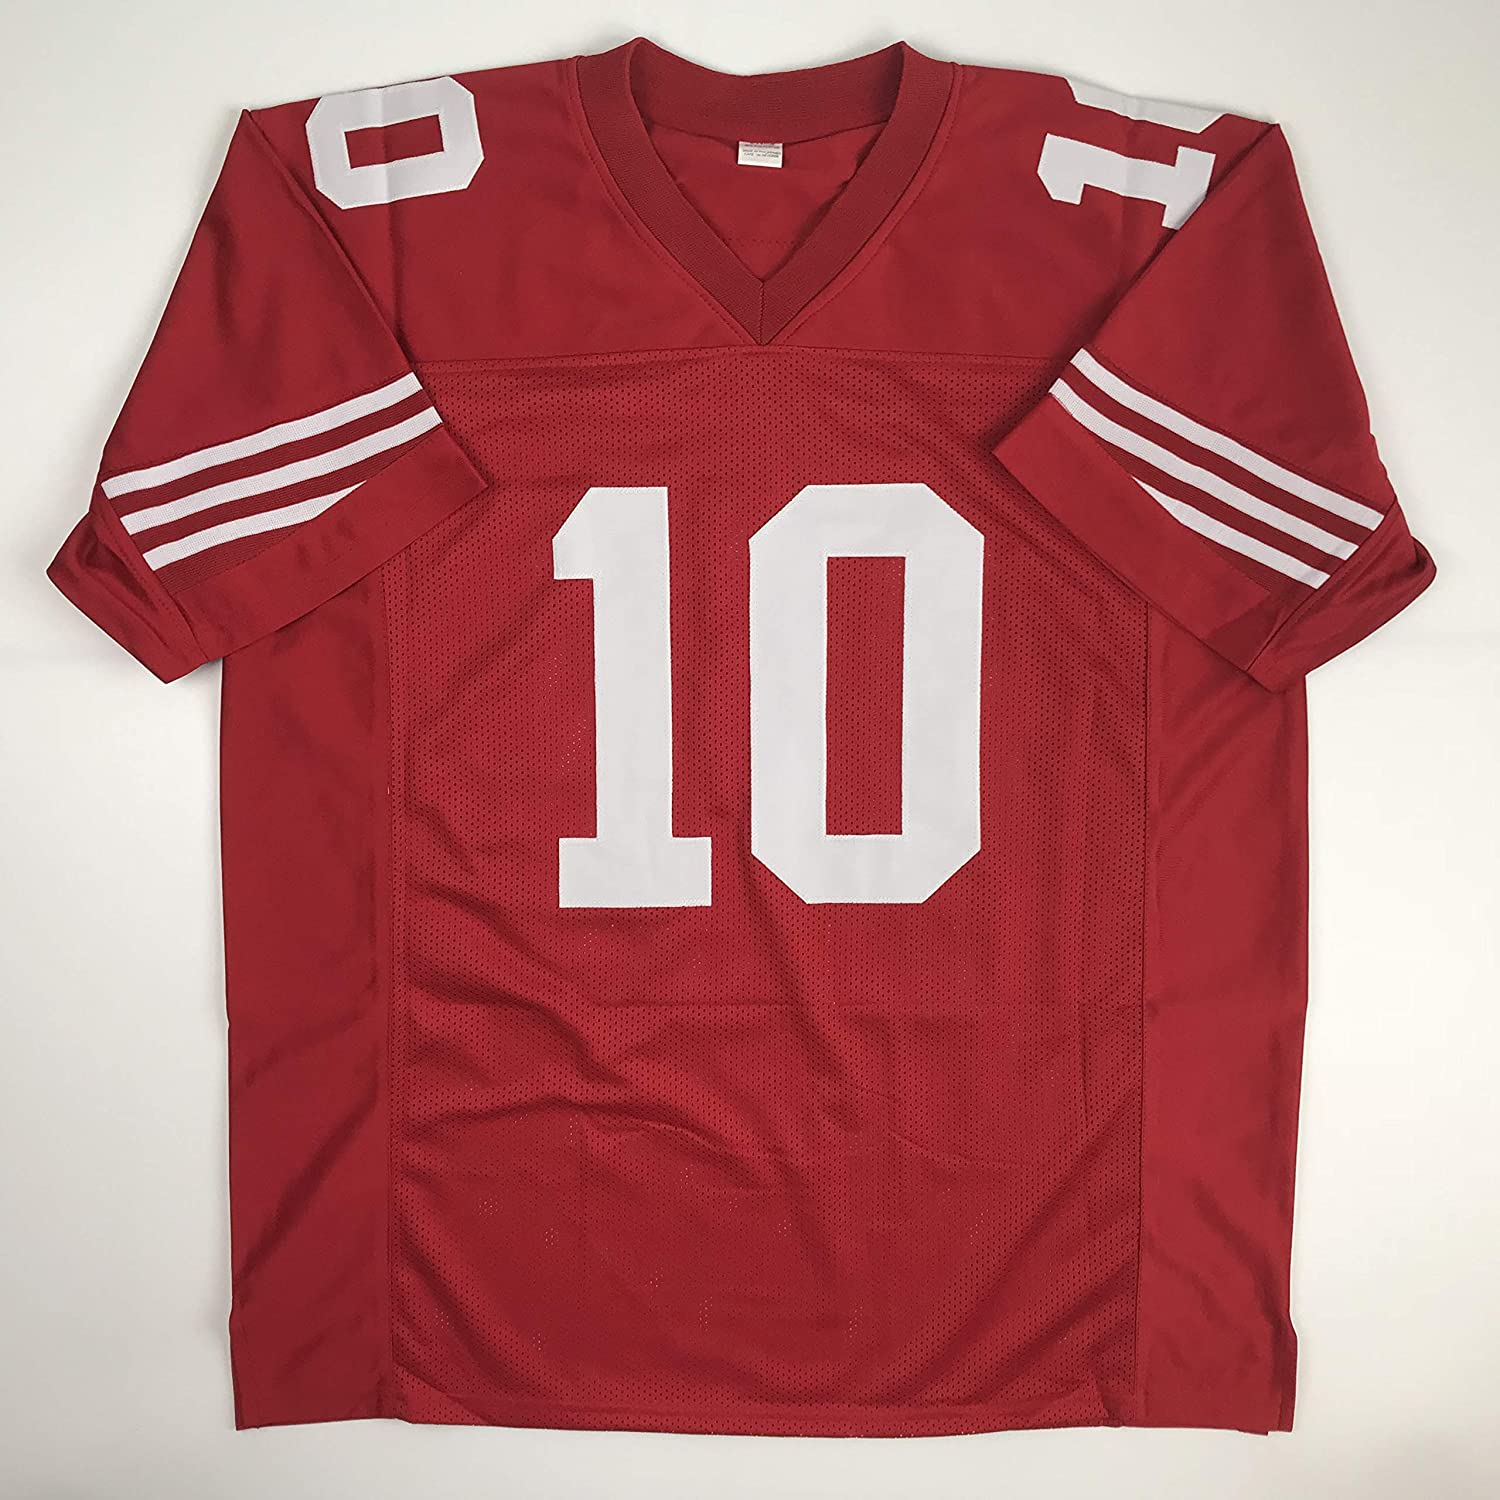 6e0748f0f91 Amazon.com  Unsigned Jimmy Garoppolo San Francisco Red Custom Stitched  Football Jersey Size Men s XL New No Brands Logos  Sports Collectibles